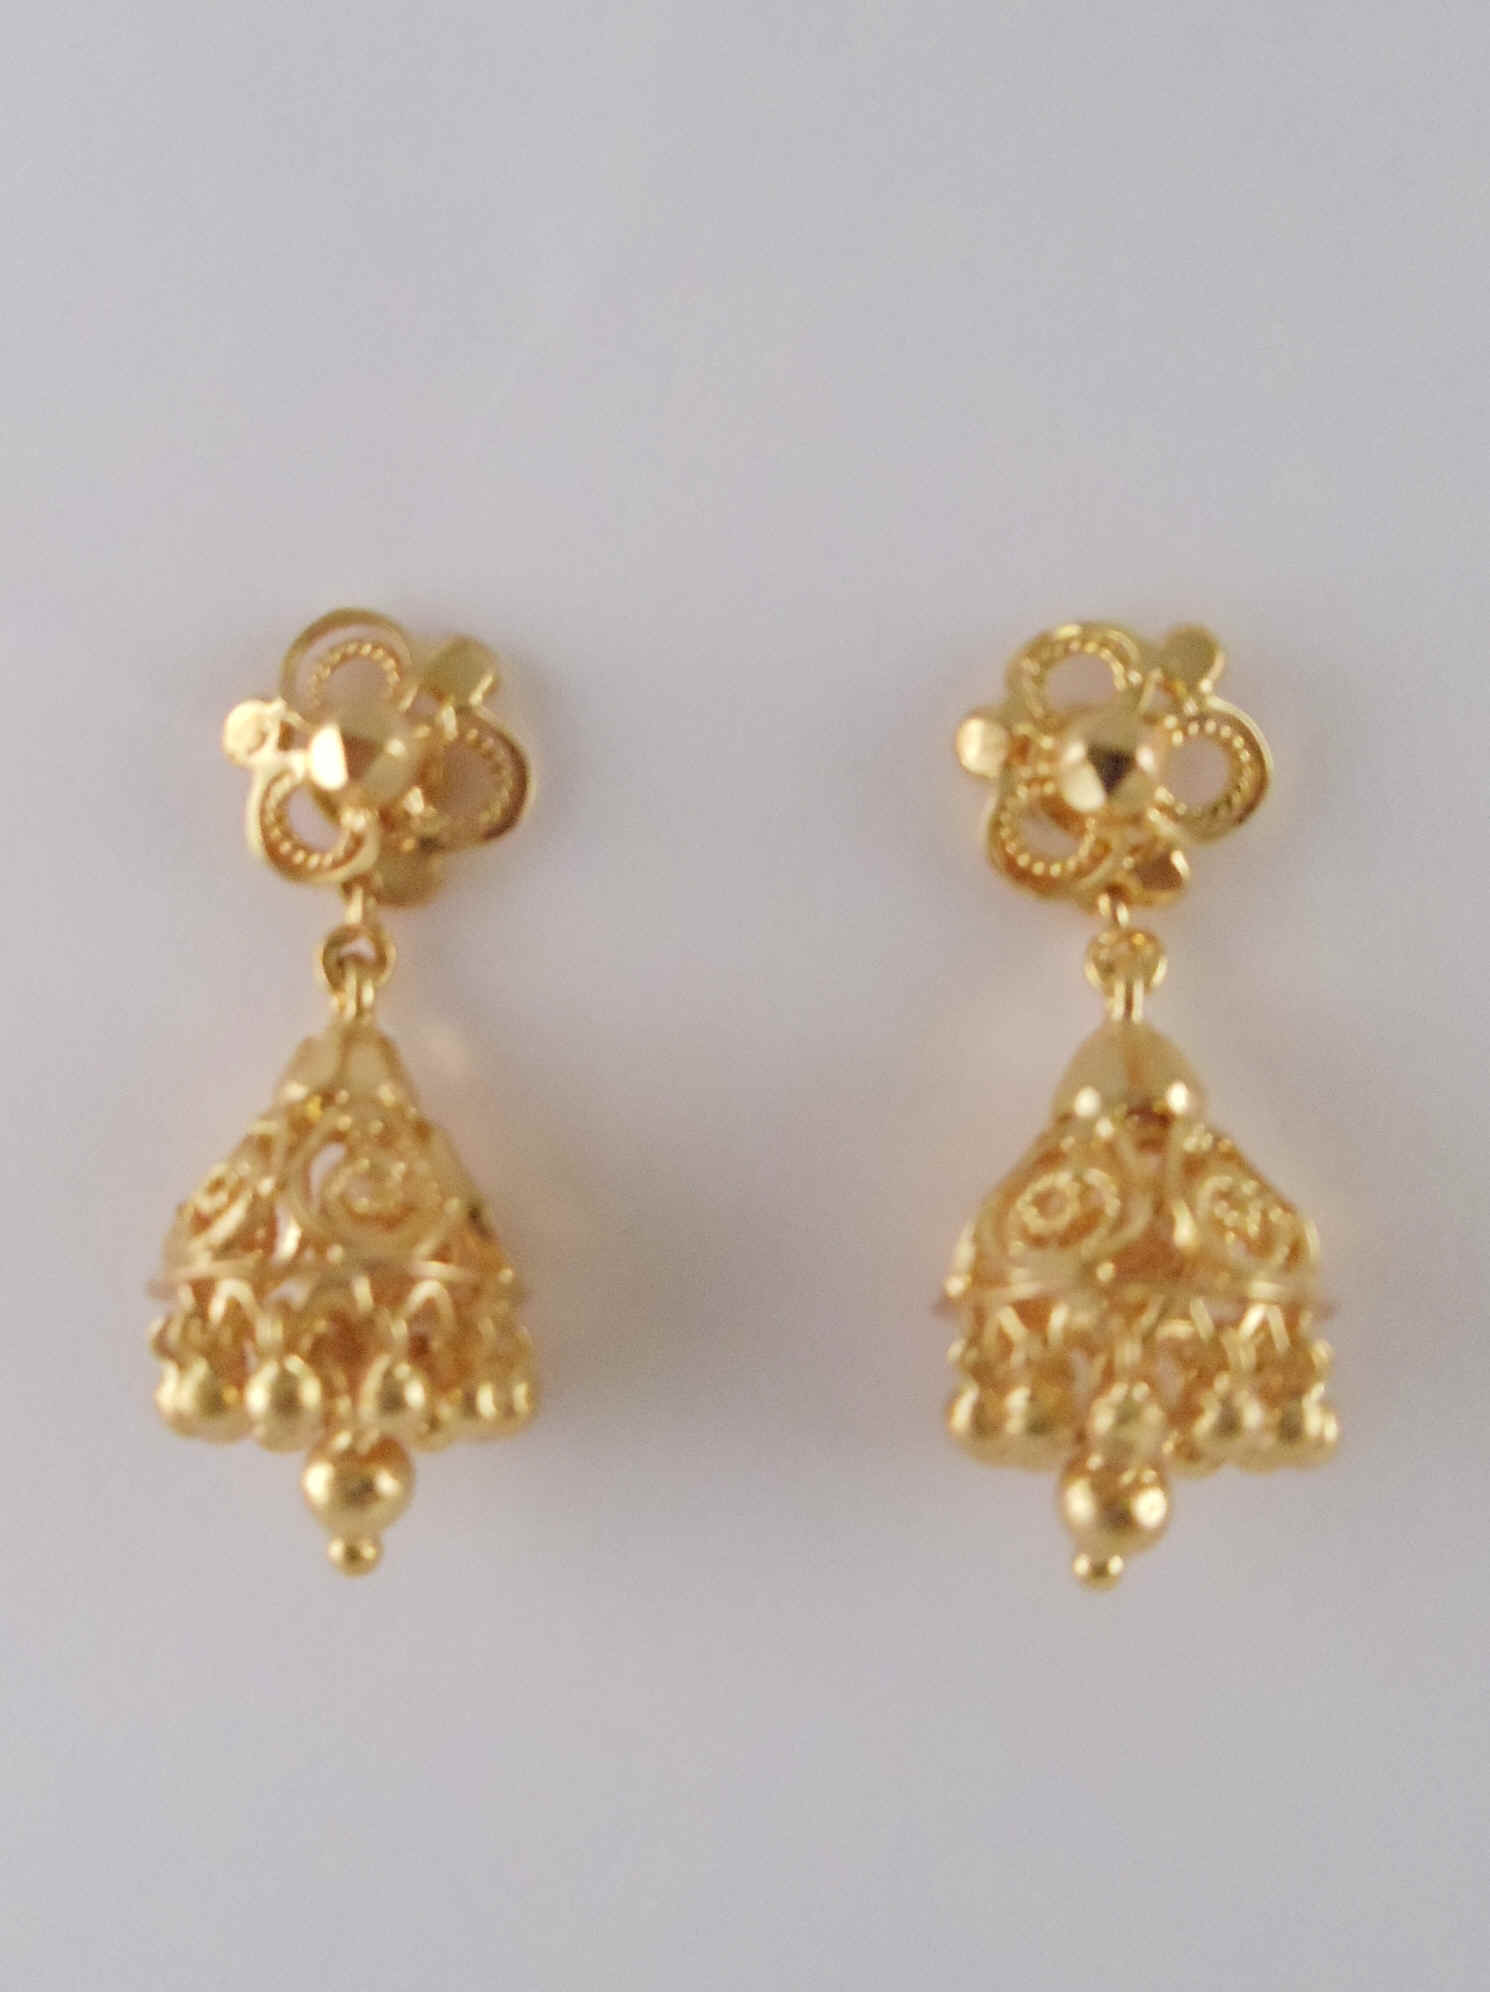 1000 images about jewelry on pinterest earrings gold